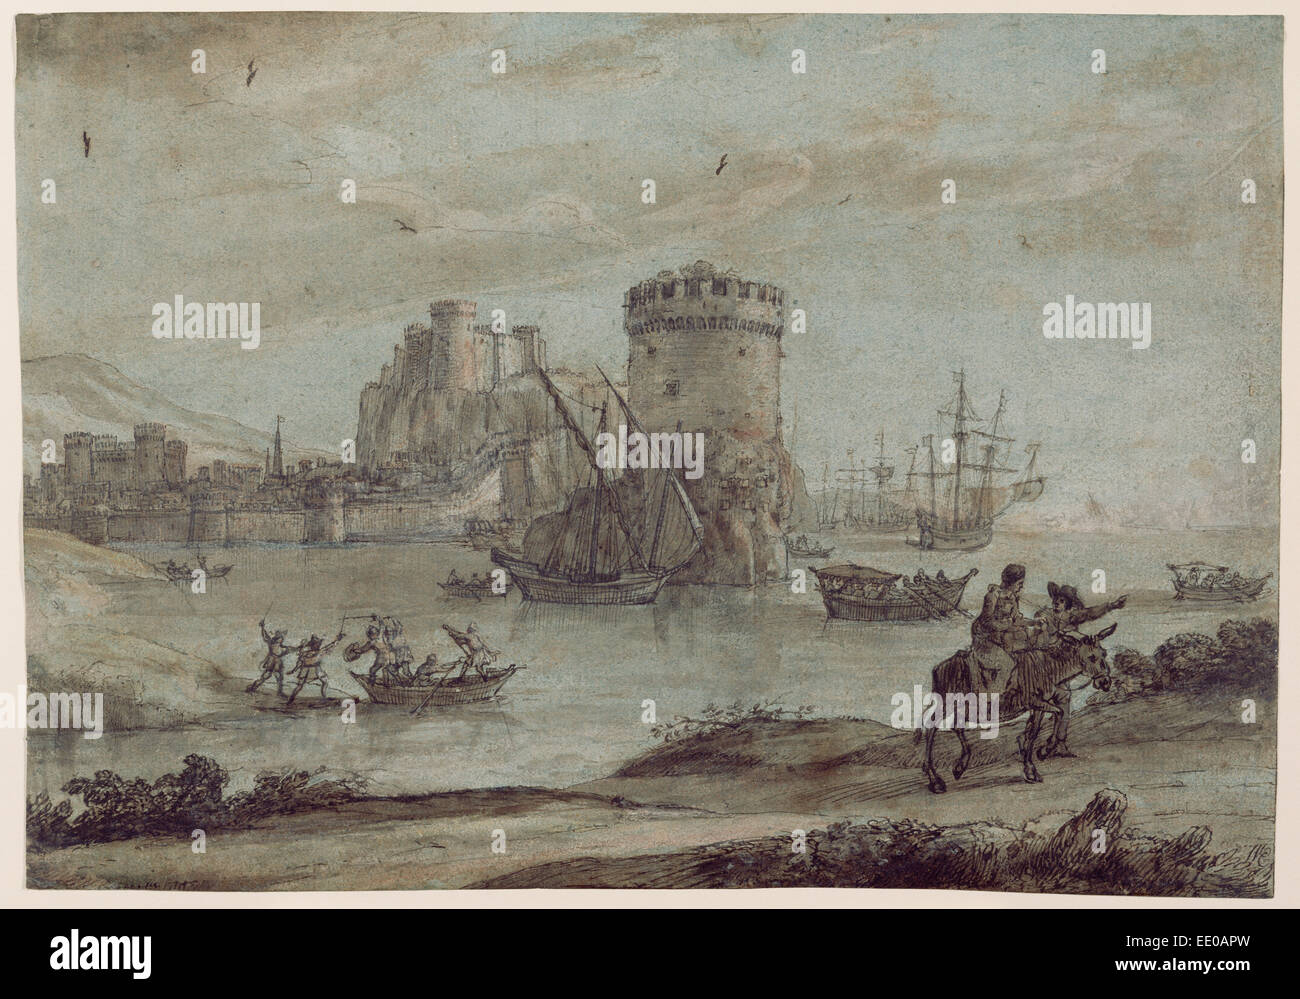 Figures in a Landscape before a Harbor; Claude Lorrain (Claude Gellée), French, 1604 or 1605 ? - 1682; France, - Stock Image